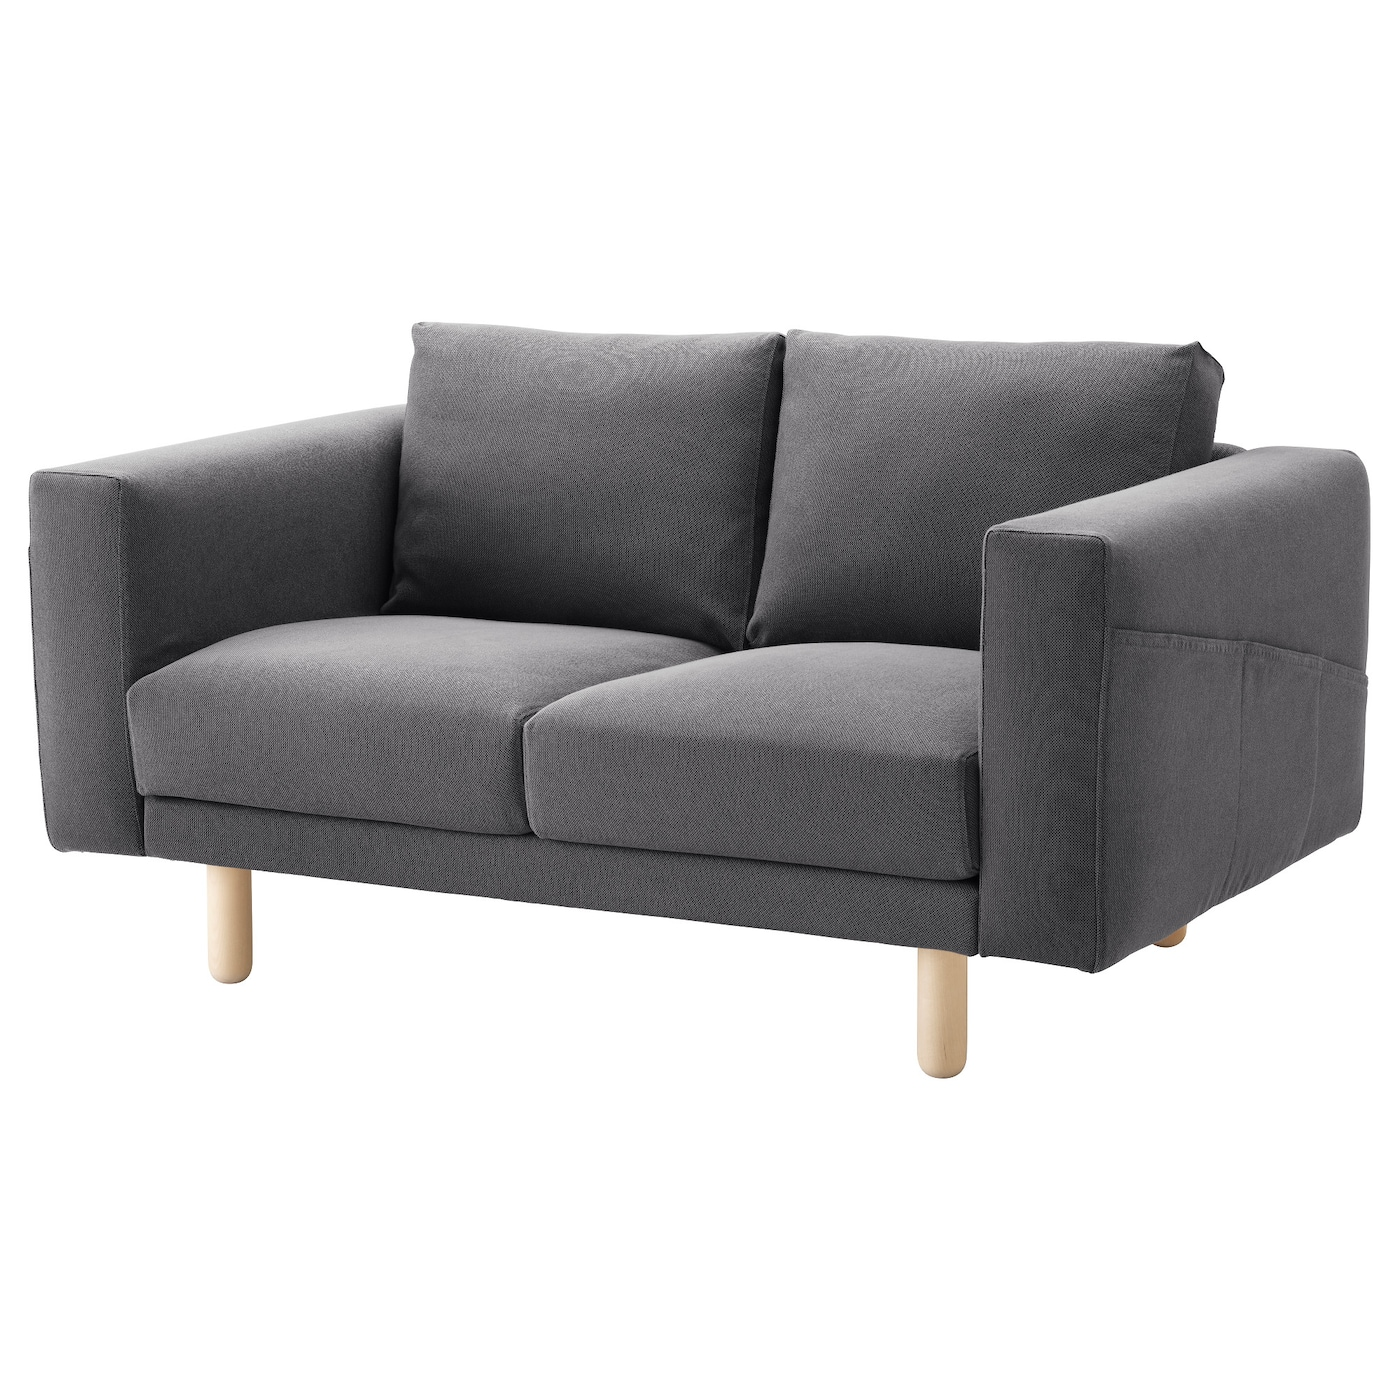 NORSBORG Two-seat sofa Finnsta dark grey/birch - IKEA